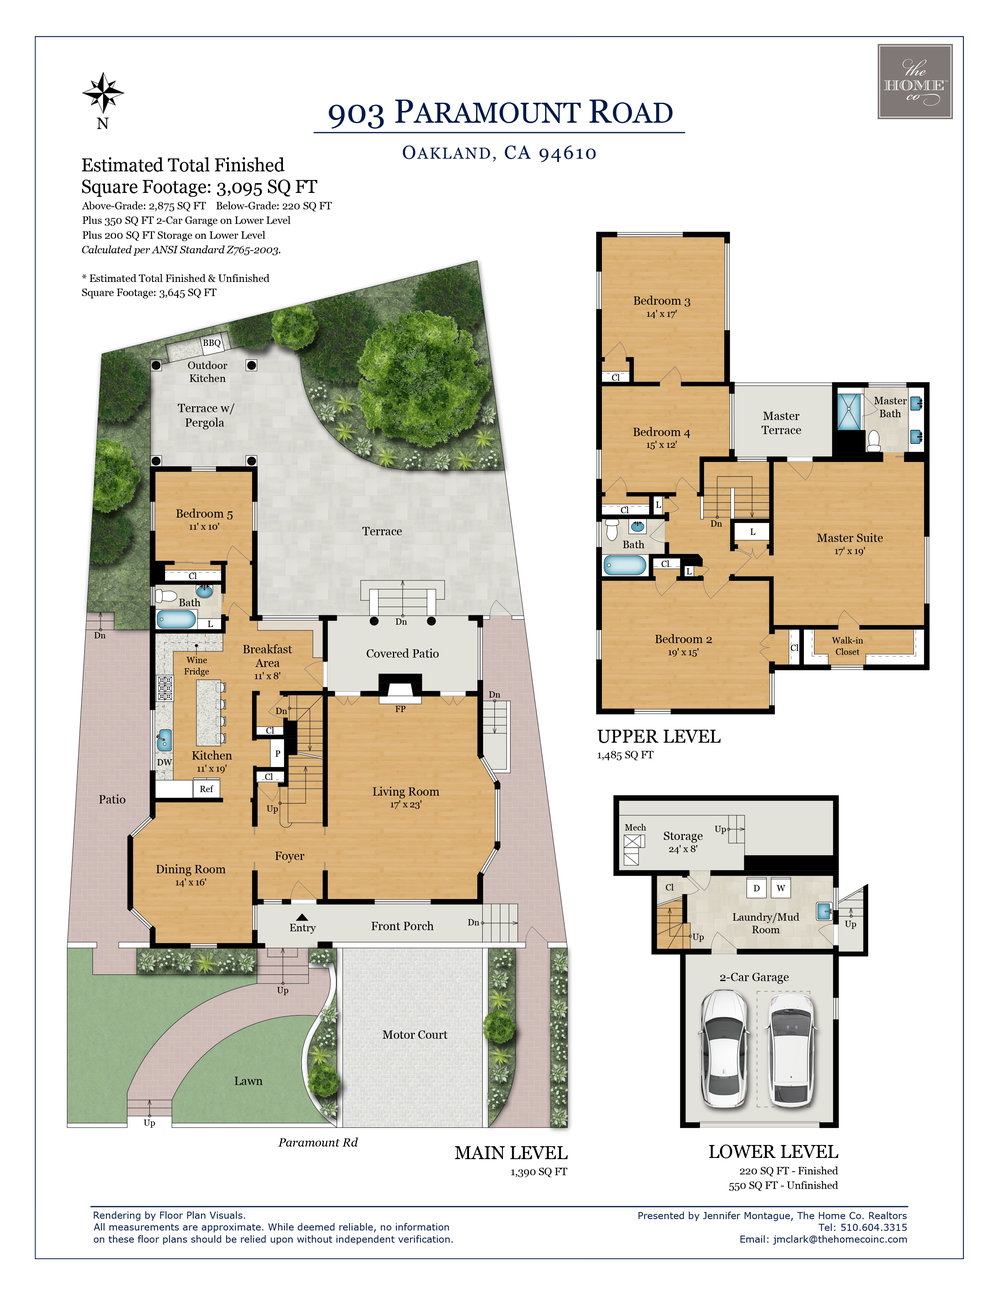 903 Paramount Road Oakland Floor Plan